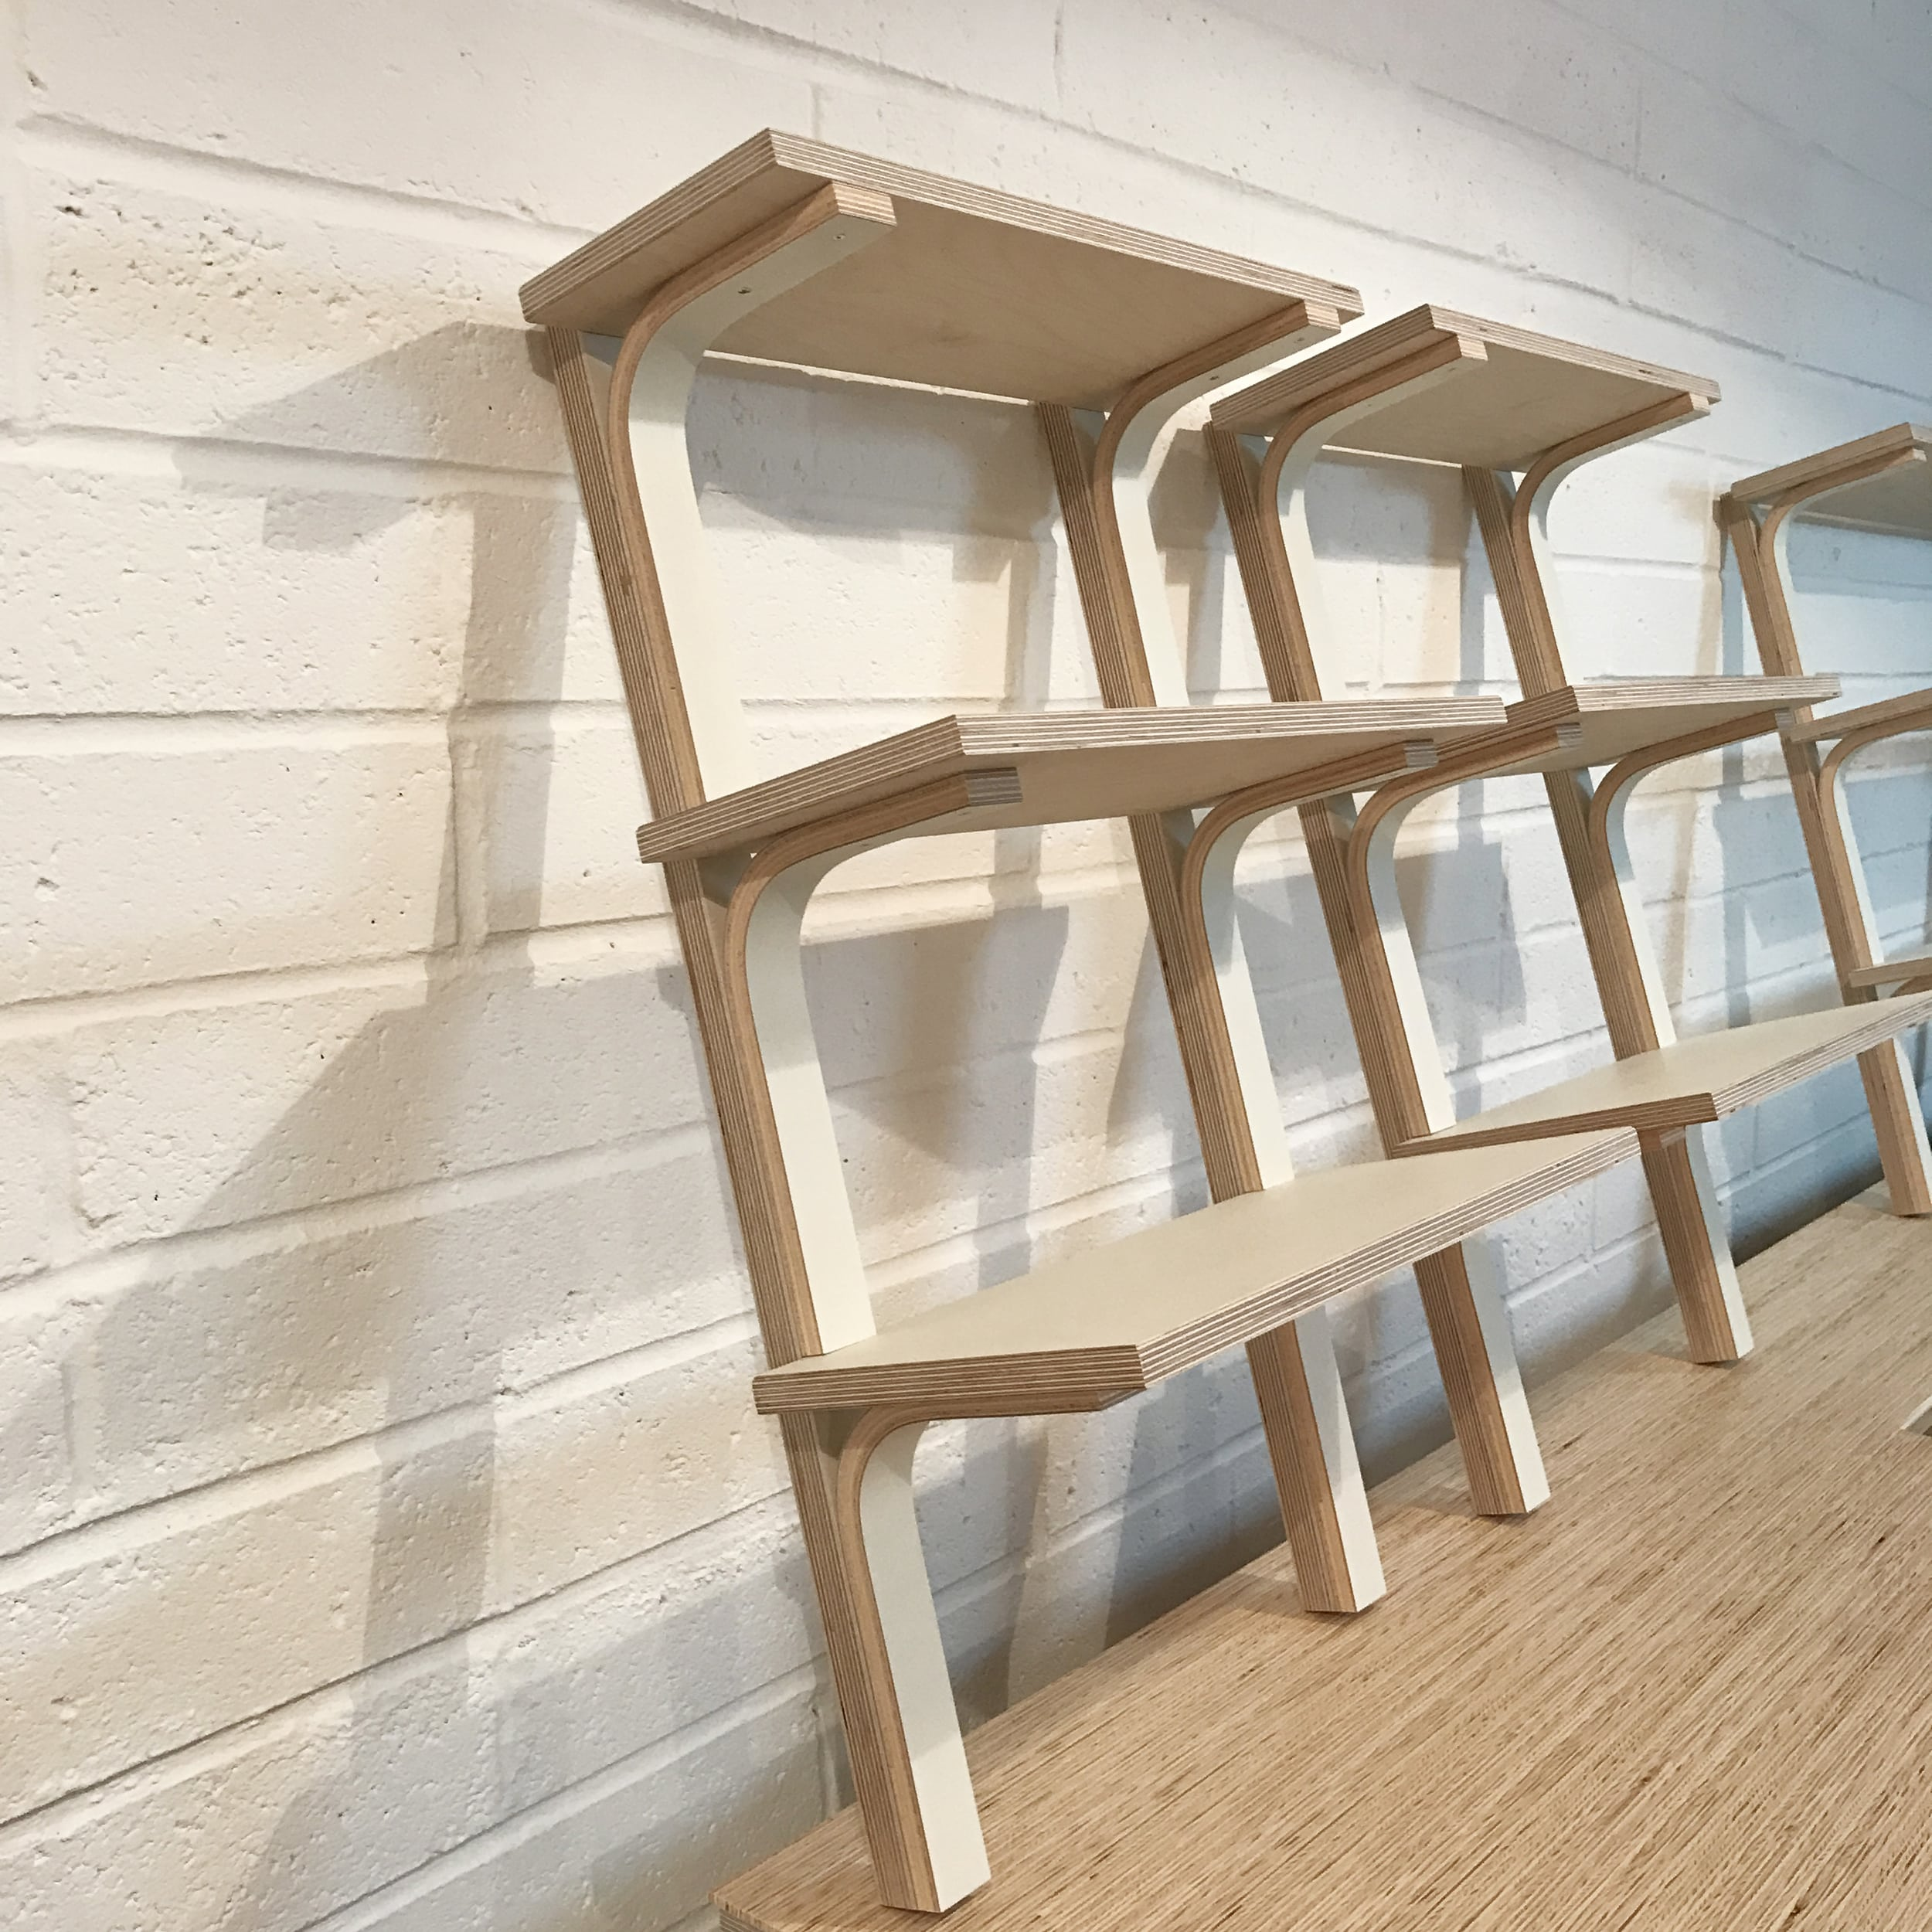 Georgina's bespoke shelving system before it was mounted to the wall. The same design was installed in her bedroom.